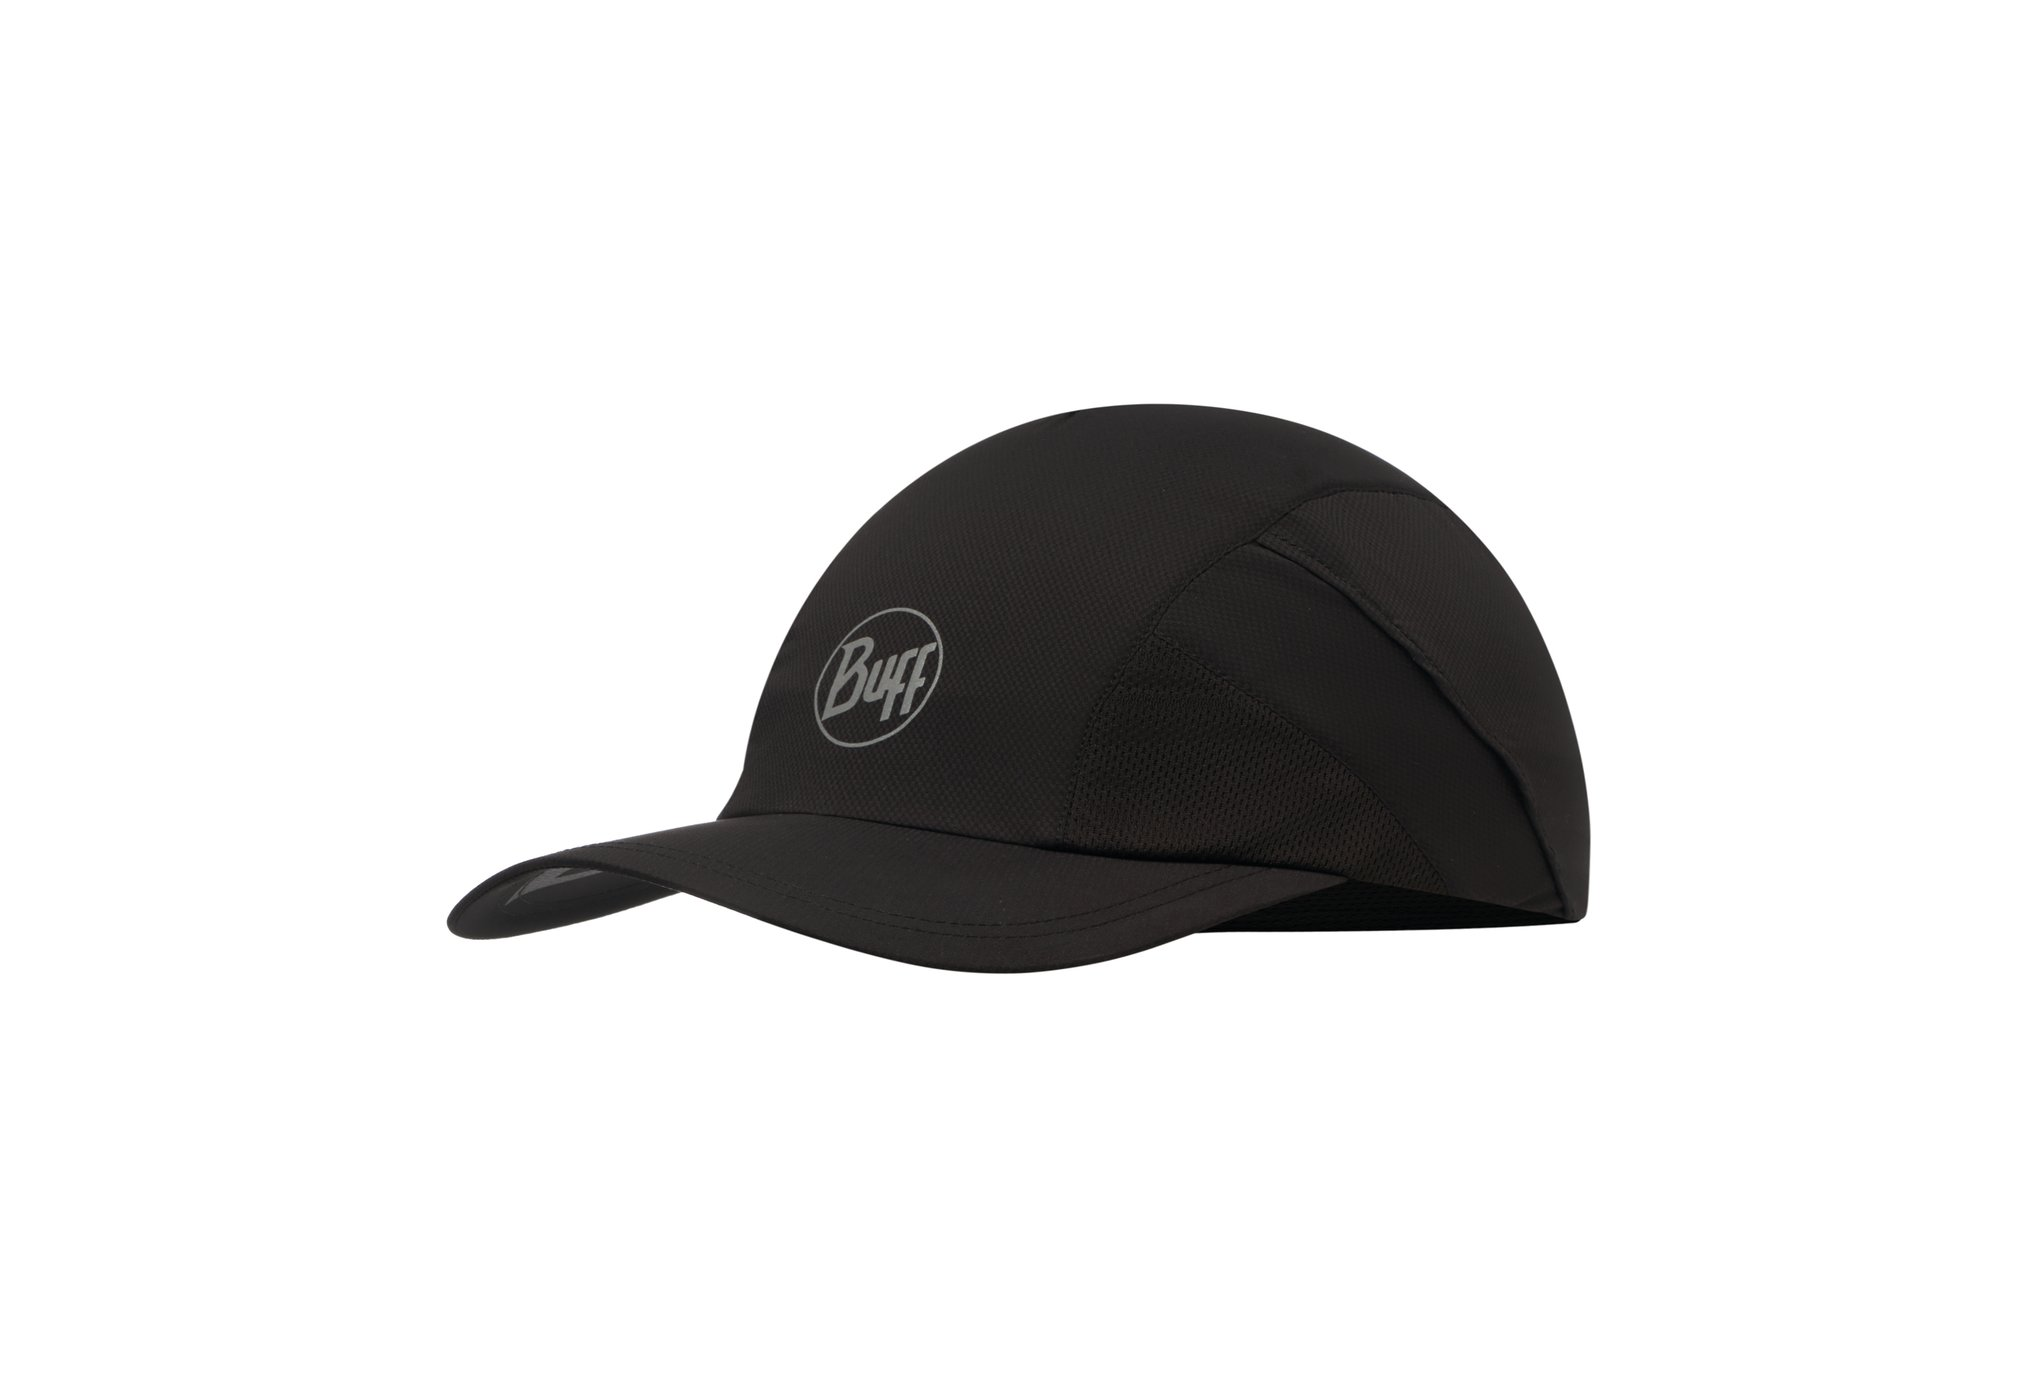 Buff Pro Run Cap R-Solid Black Casquettes / bandeaux